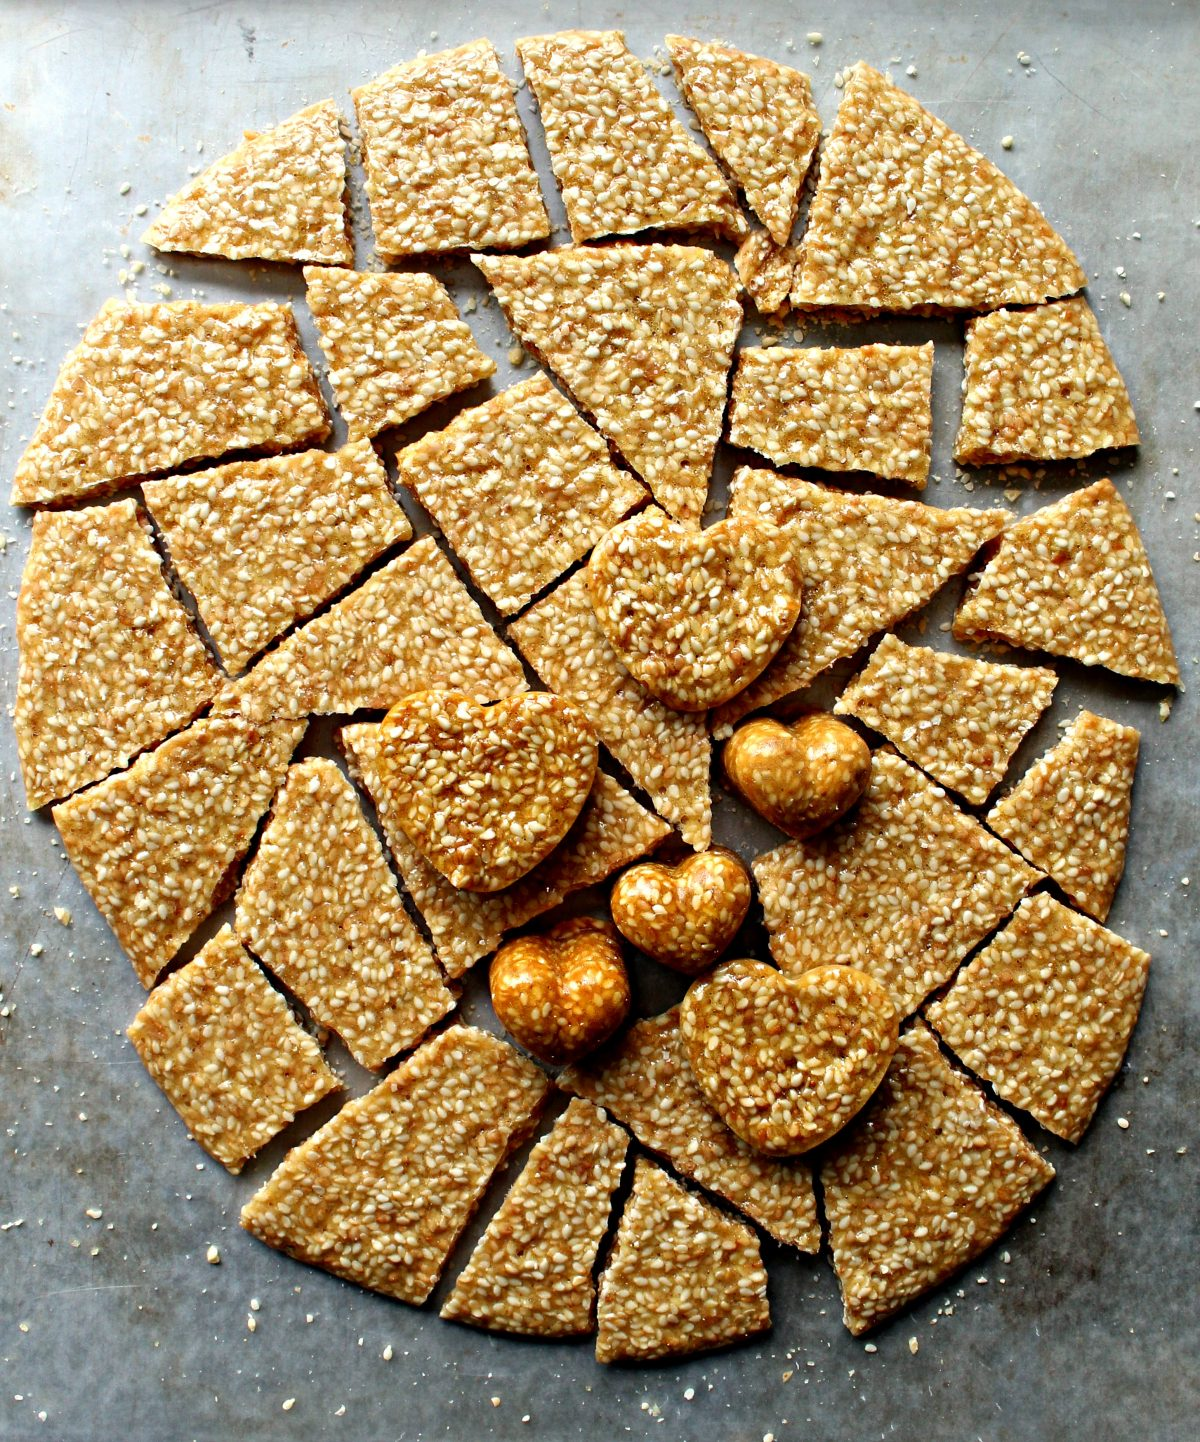 A large circle of Honey Sesame Brittle broken into shards and some heart molded brittle.